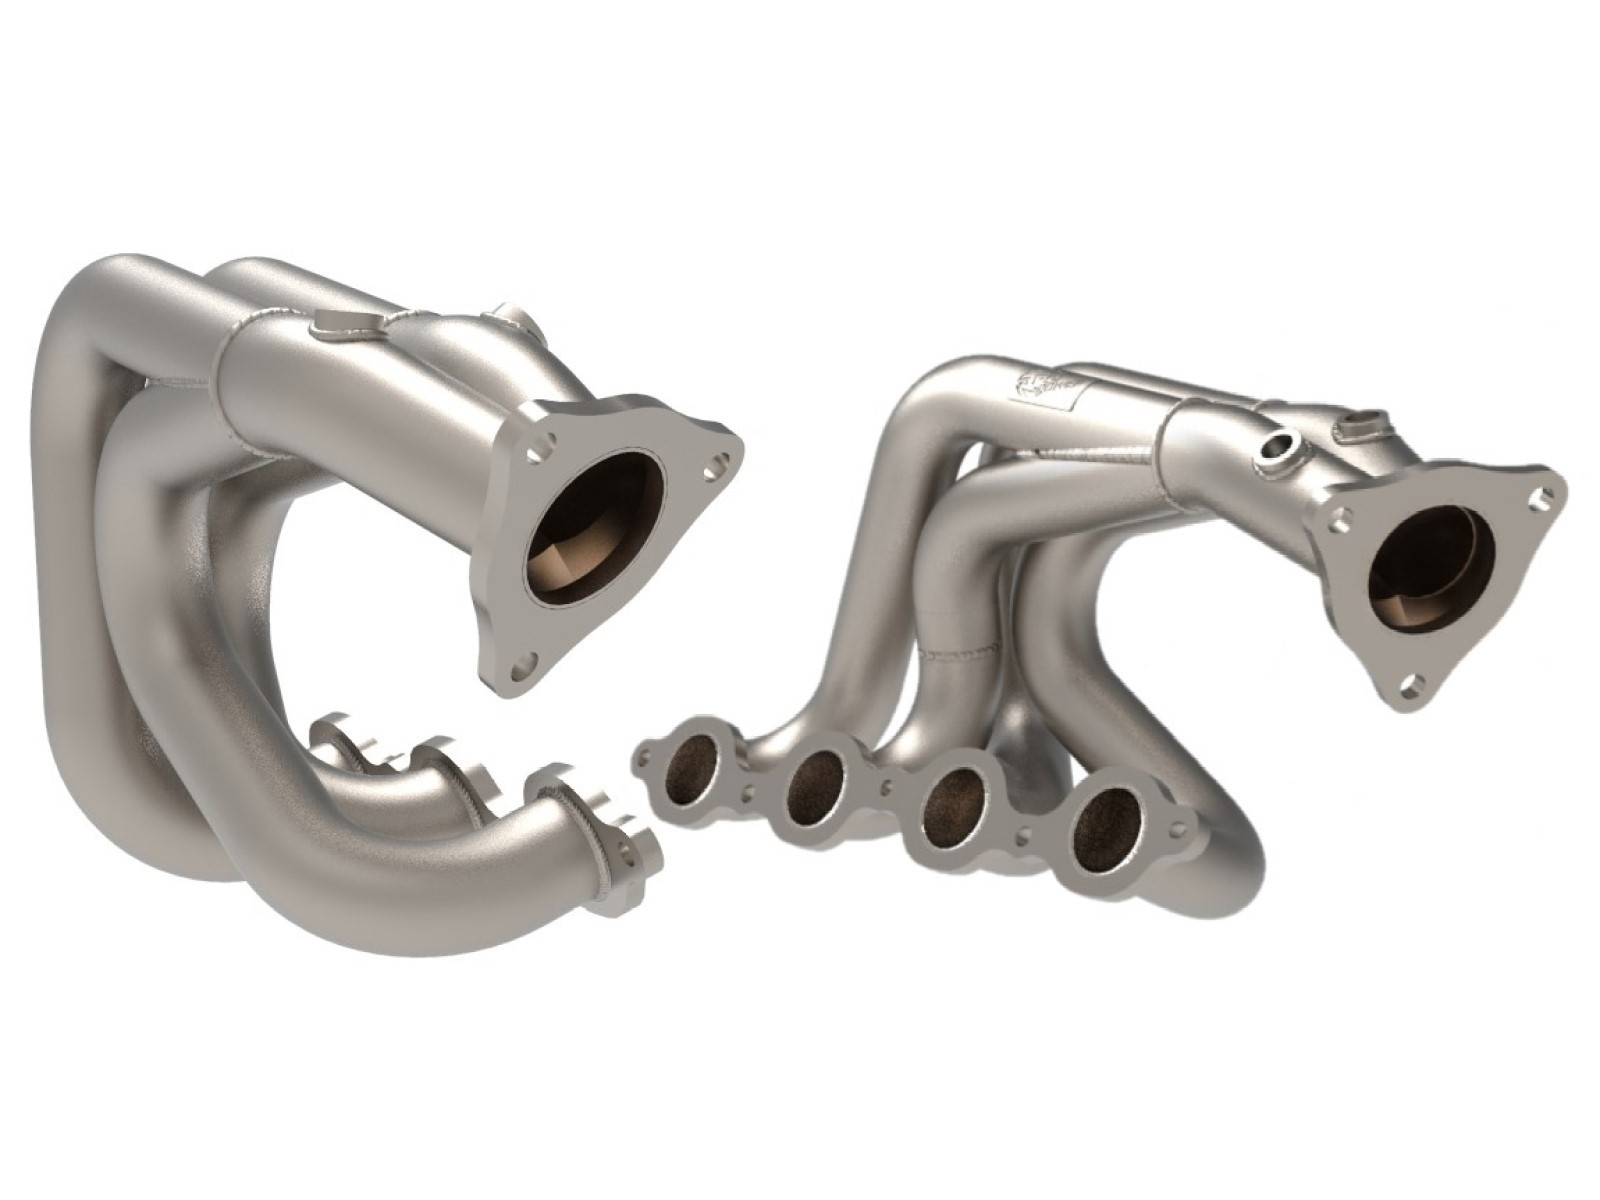 Corvette (C8) 2020 V8-6.2L Twisted Steel 304 Stainless Steel Headers  48-34148